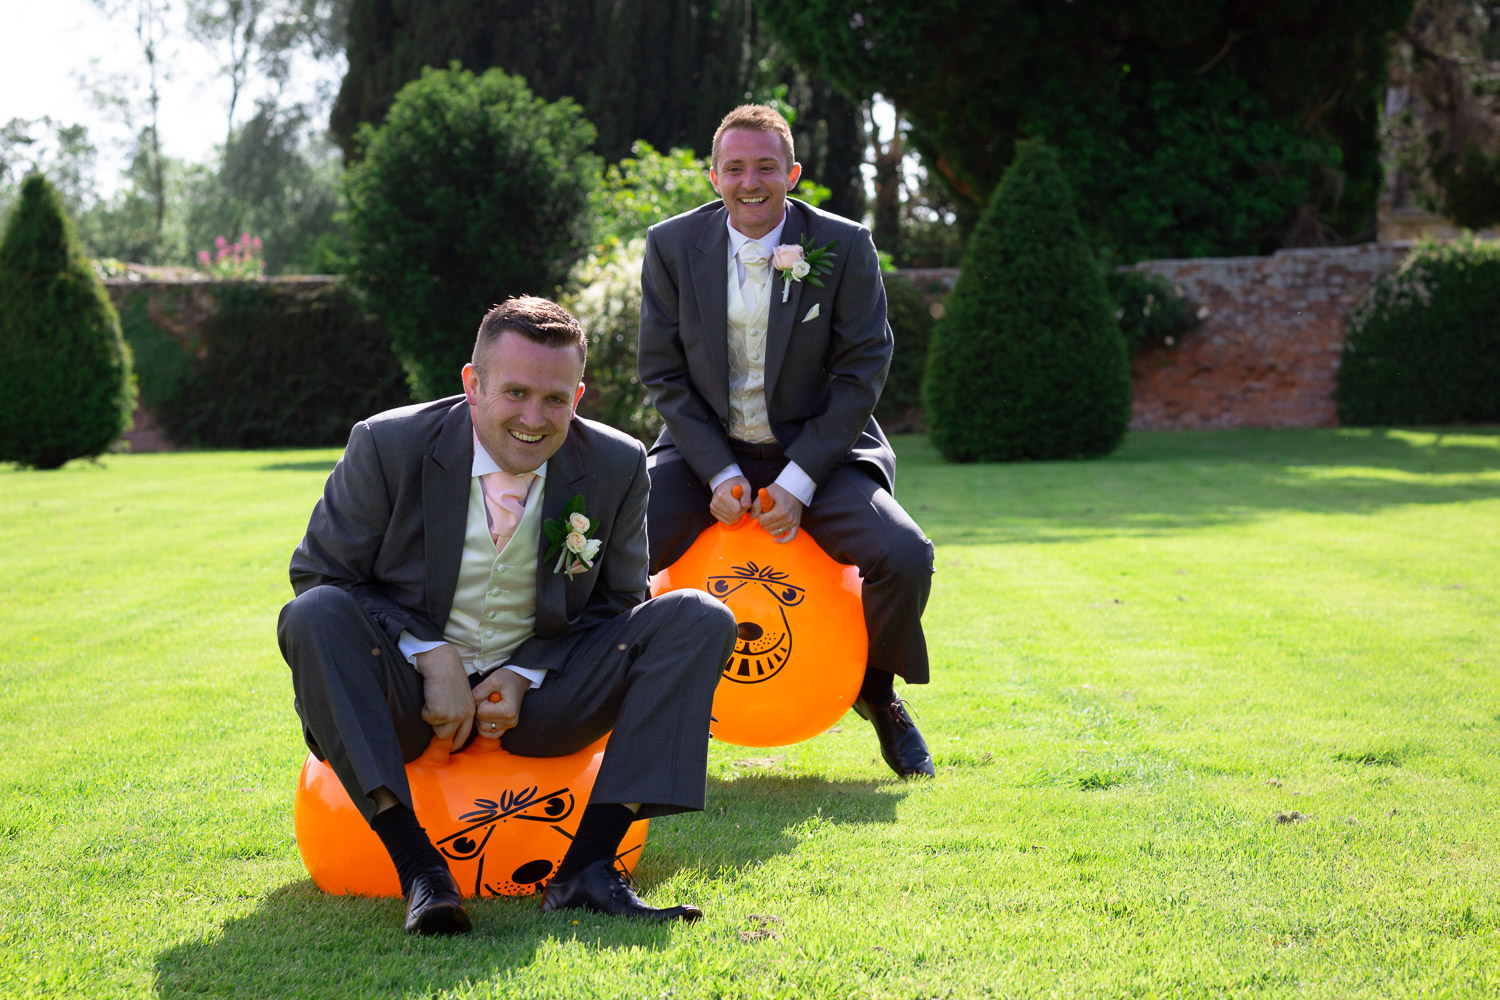 Wedding emotions laughter fun and games on bouncy hoppers